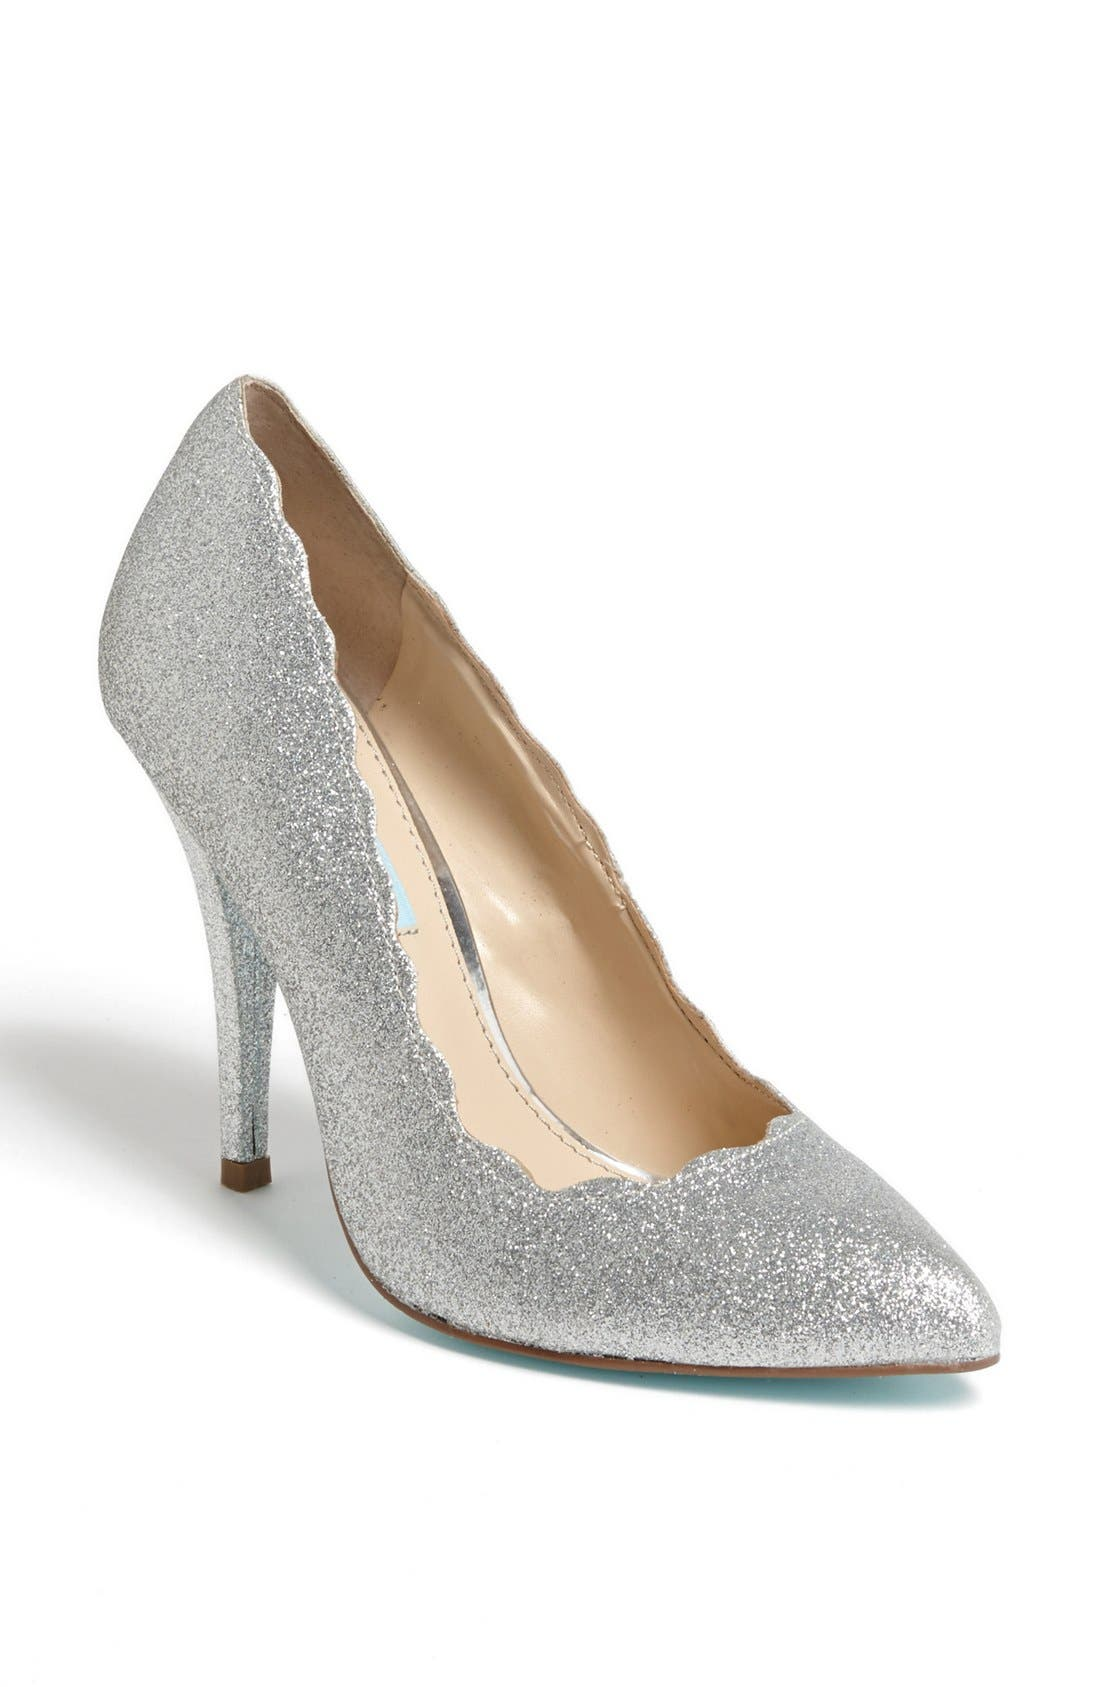 BETSEY JOHNSON Blue by Betsey Johnson 'Altar' Pump, Main, color, 040